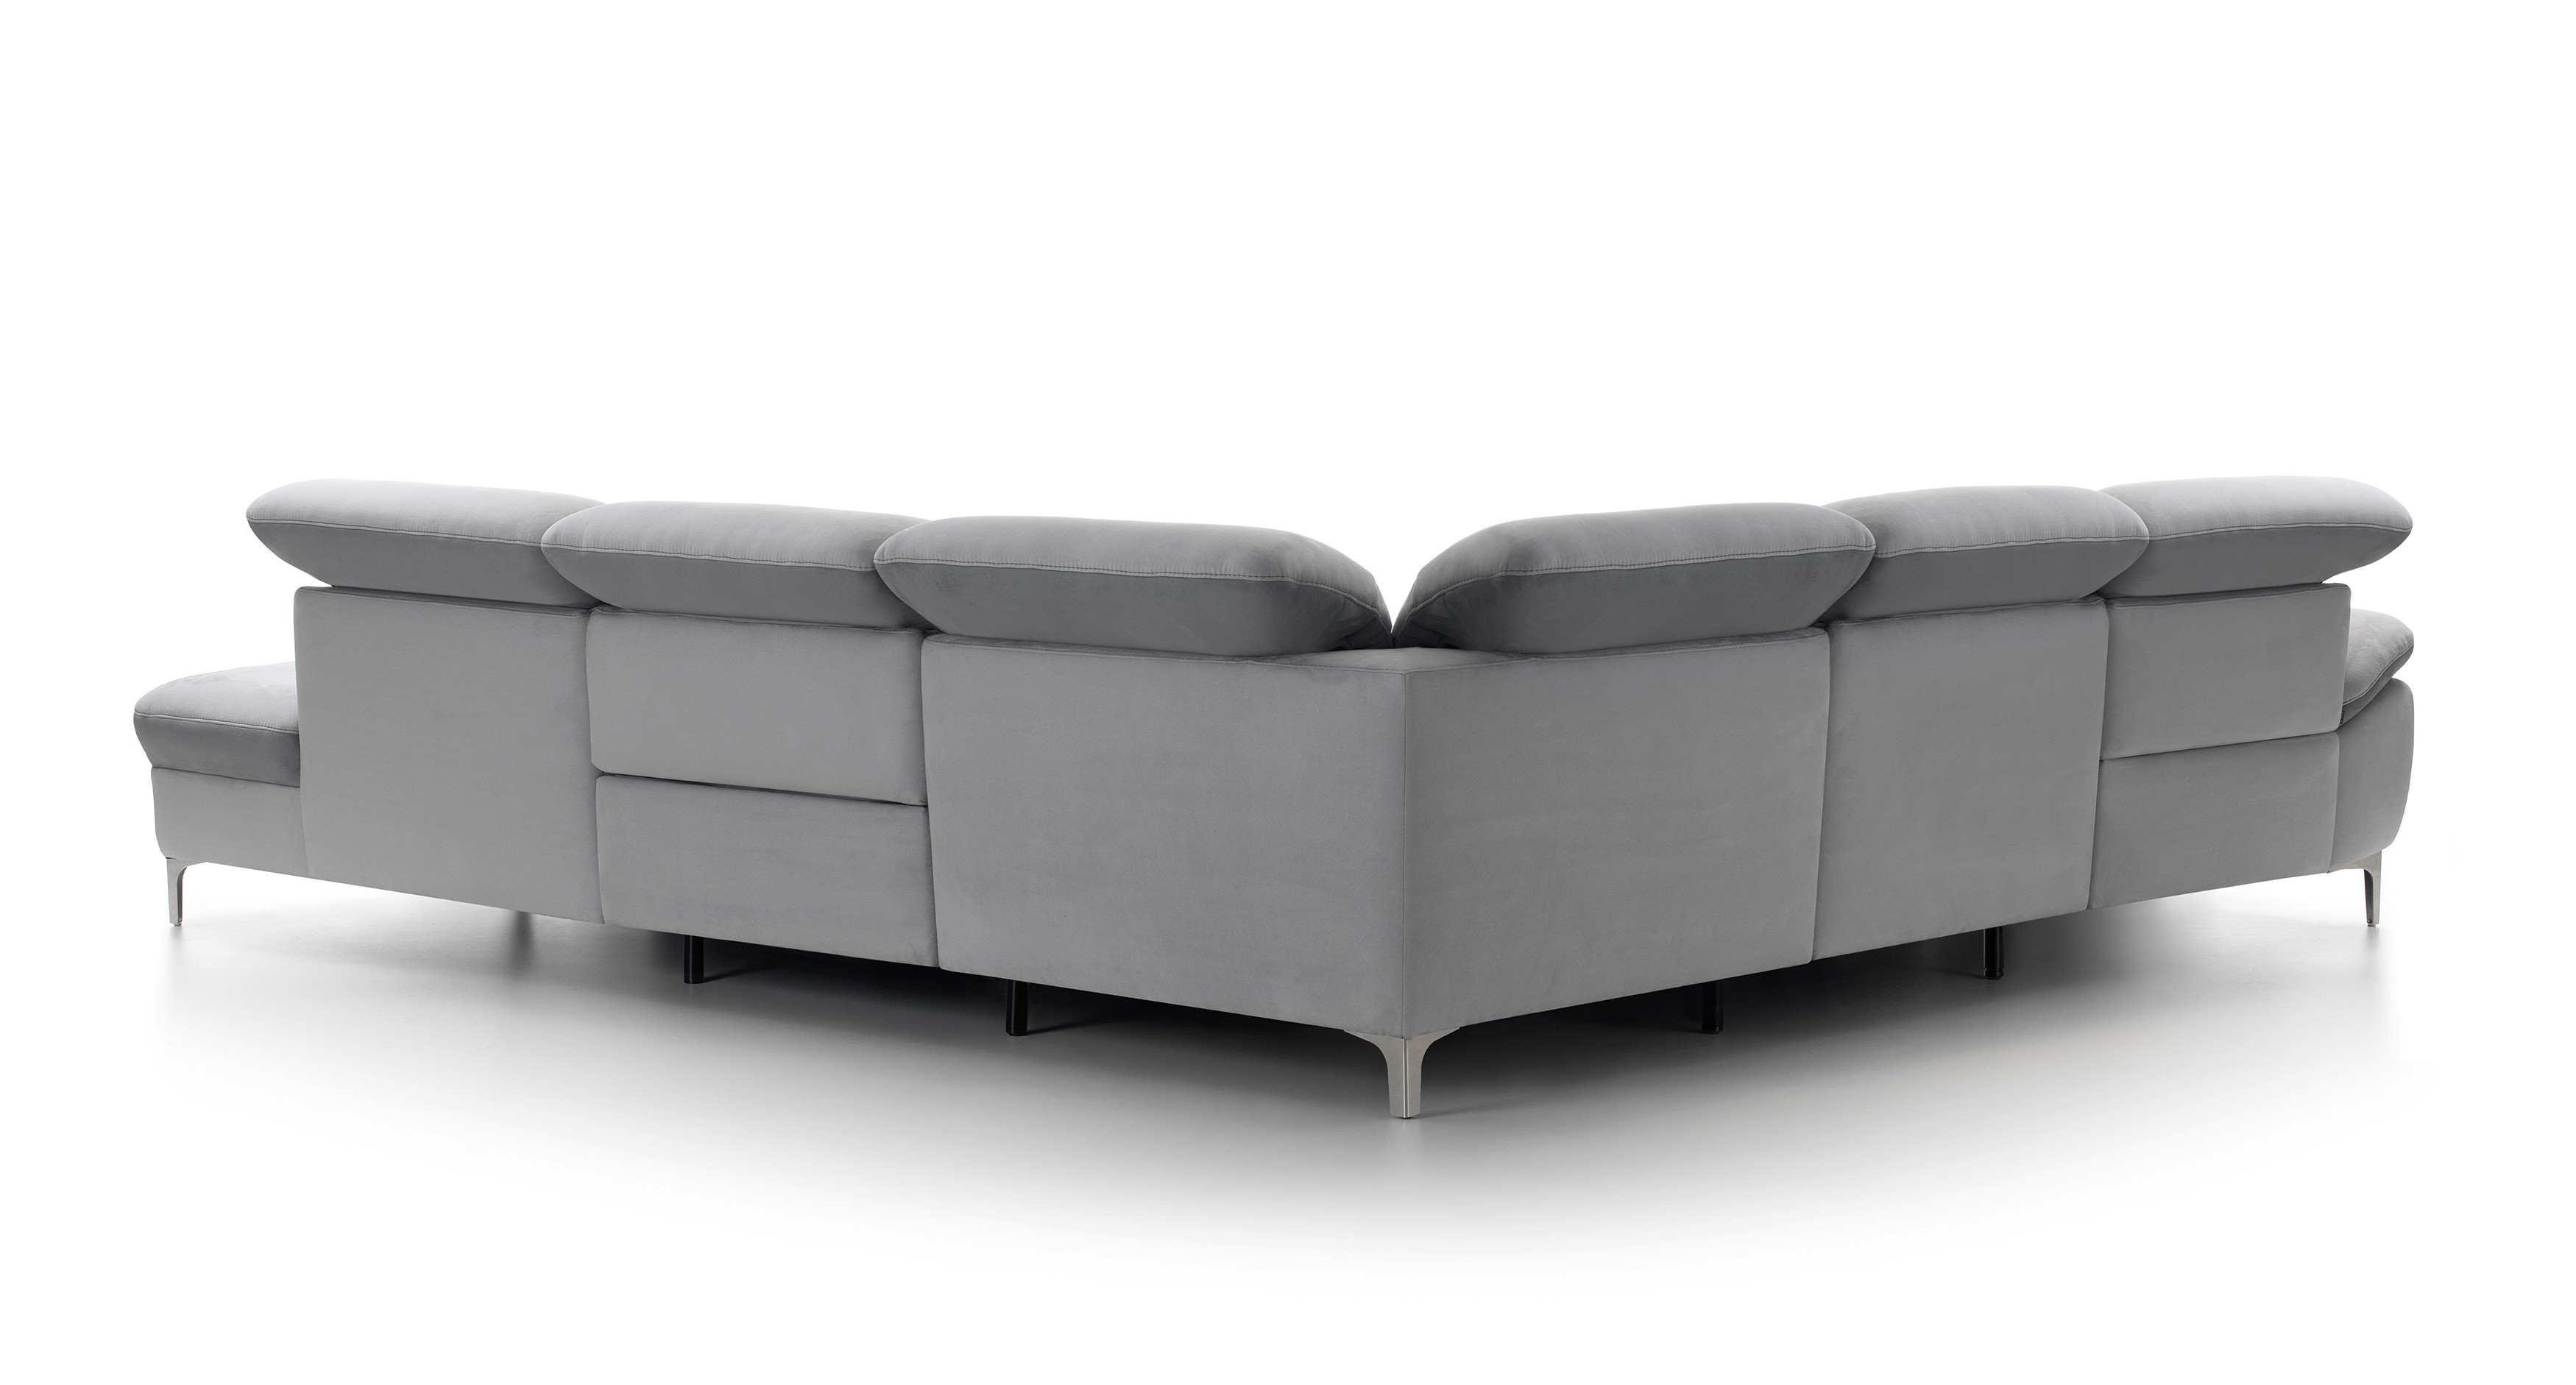 Chaise Aladin Daphne Leather Sectional By Rom Belgium At Nova Interiors